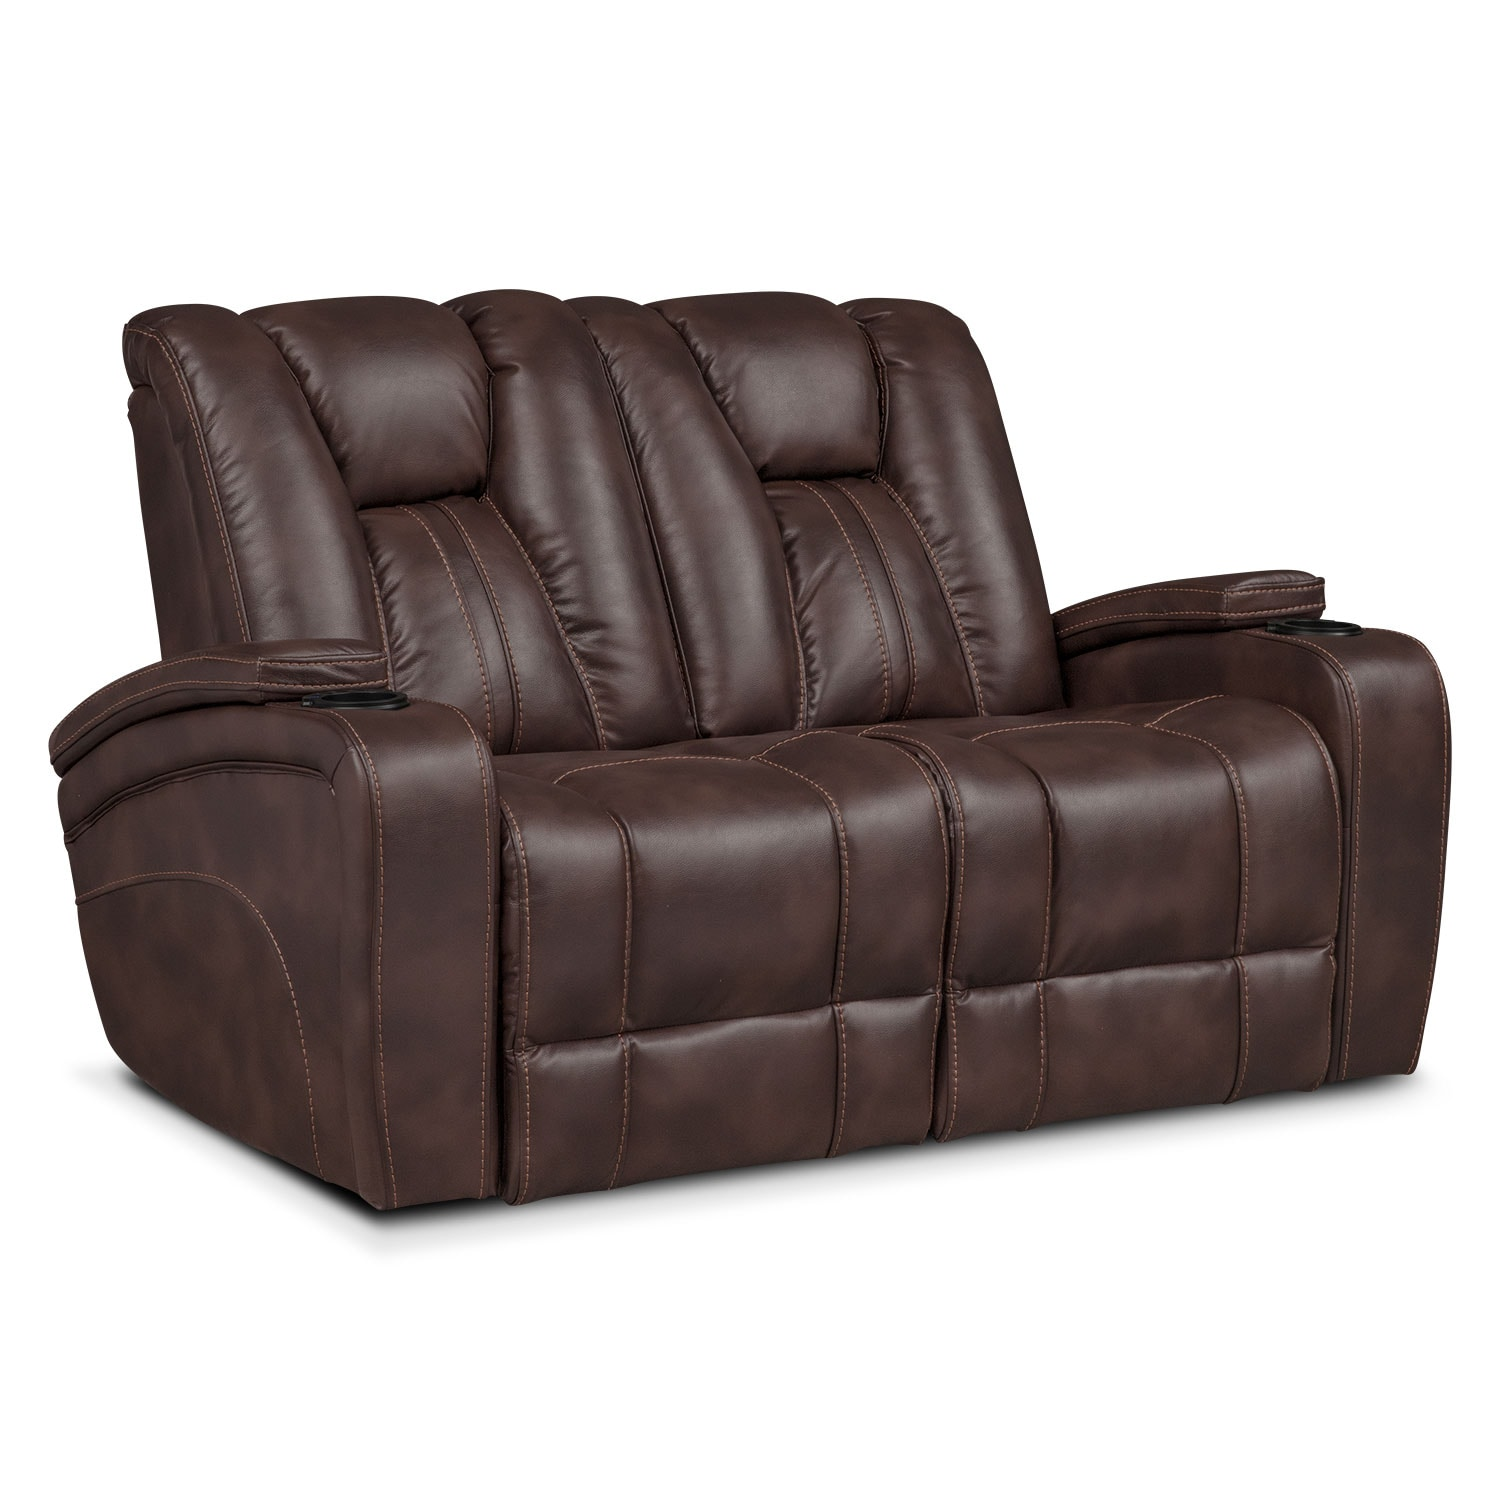 Pulsar Power Reclining Sofa Power Reclining Loveseat and Power